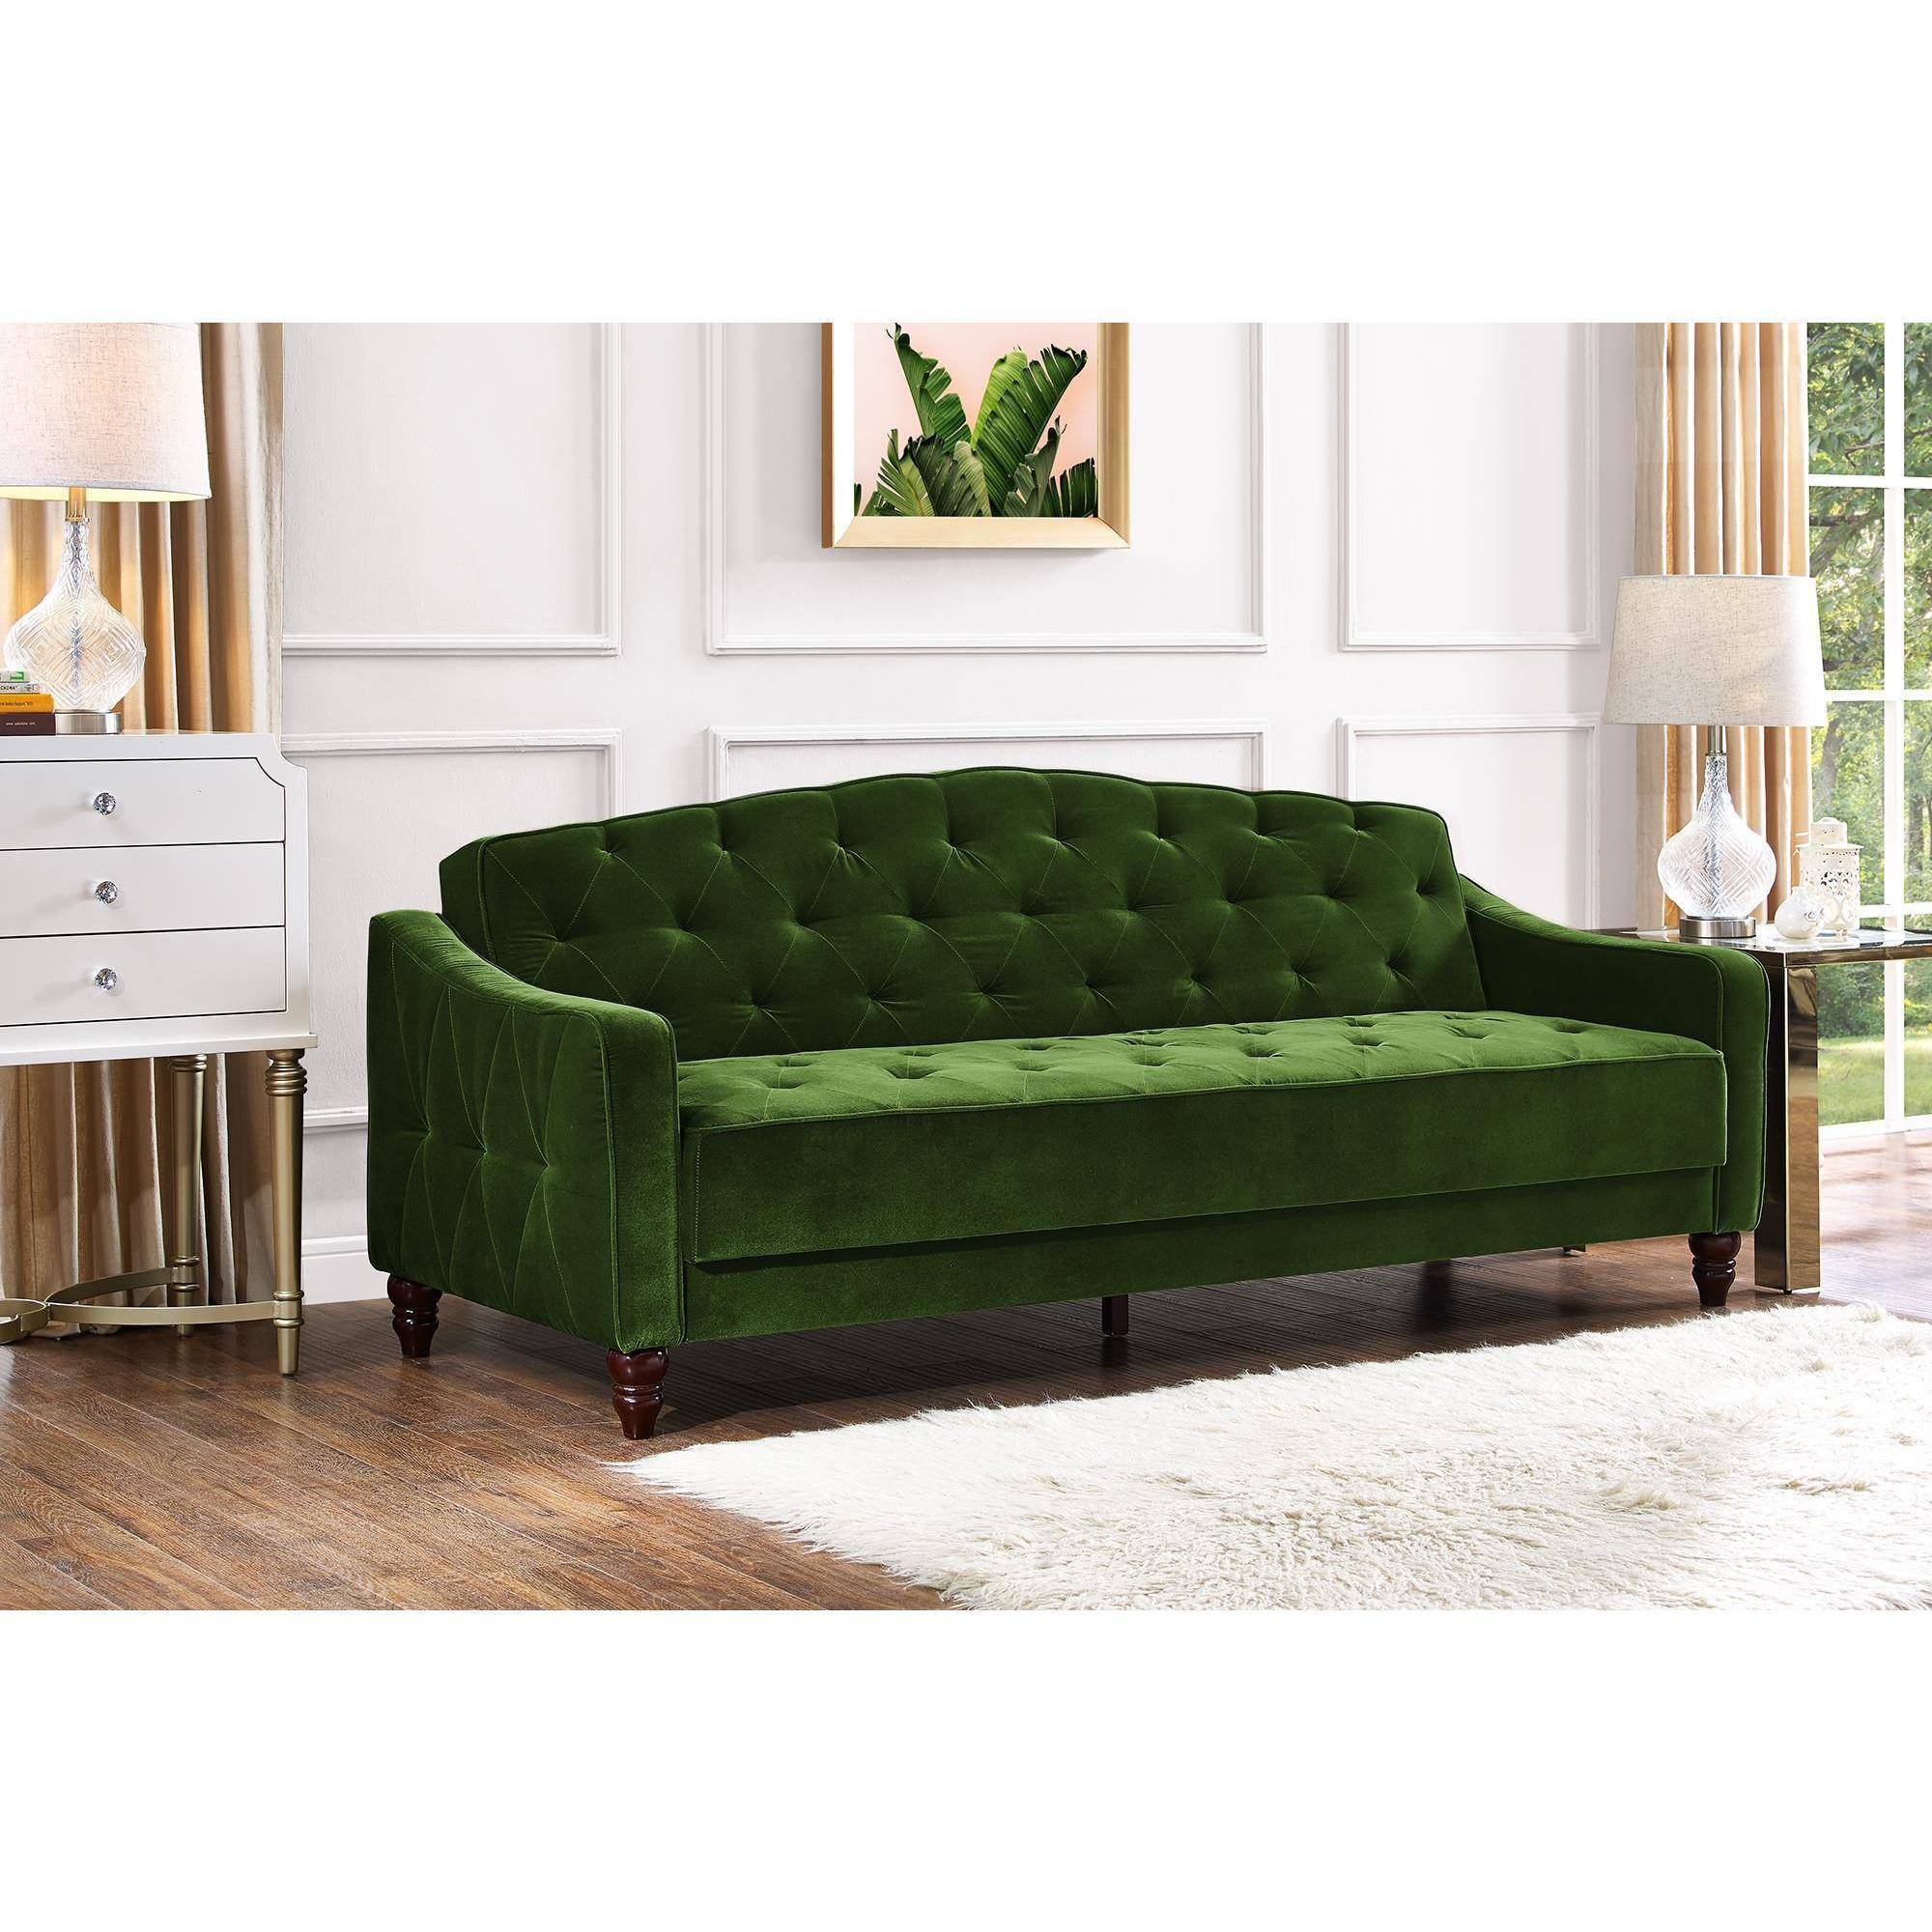 Novogratz Vintage Tufted Sofa Sleeper Ii Multiple Colors Walmart Com